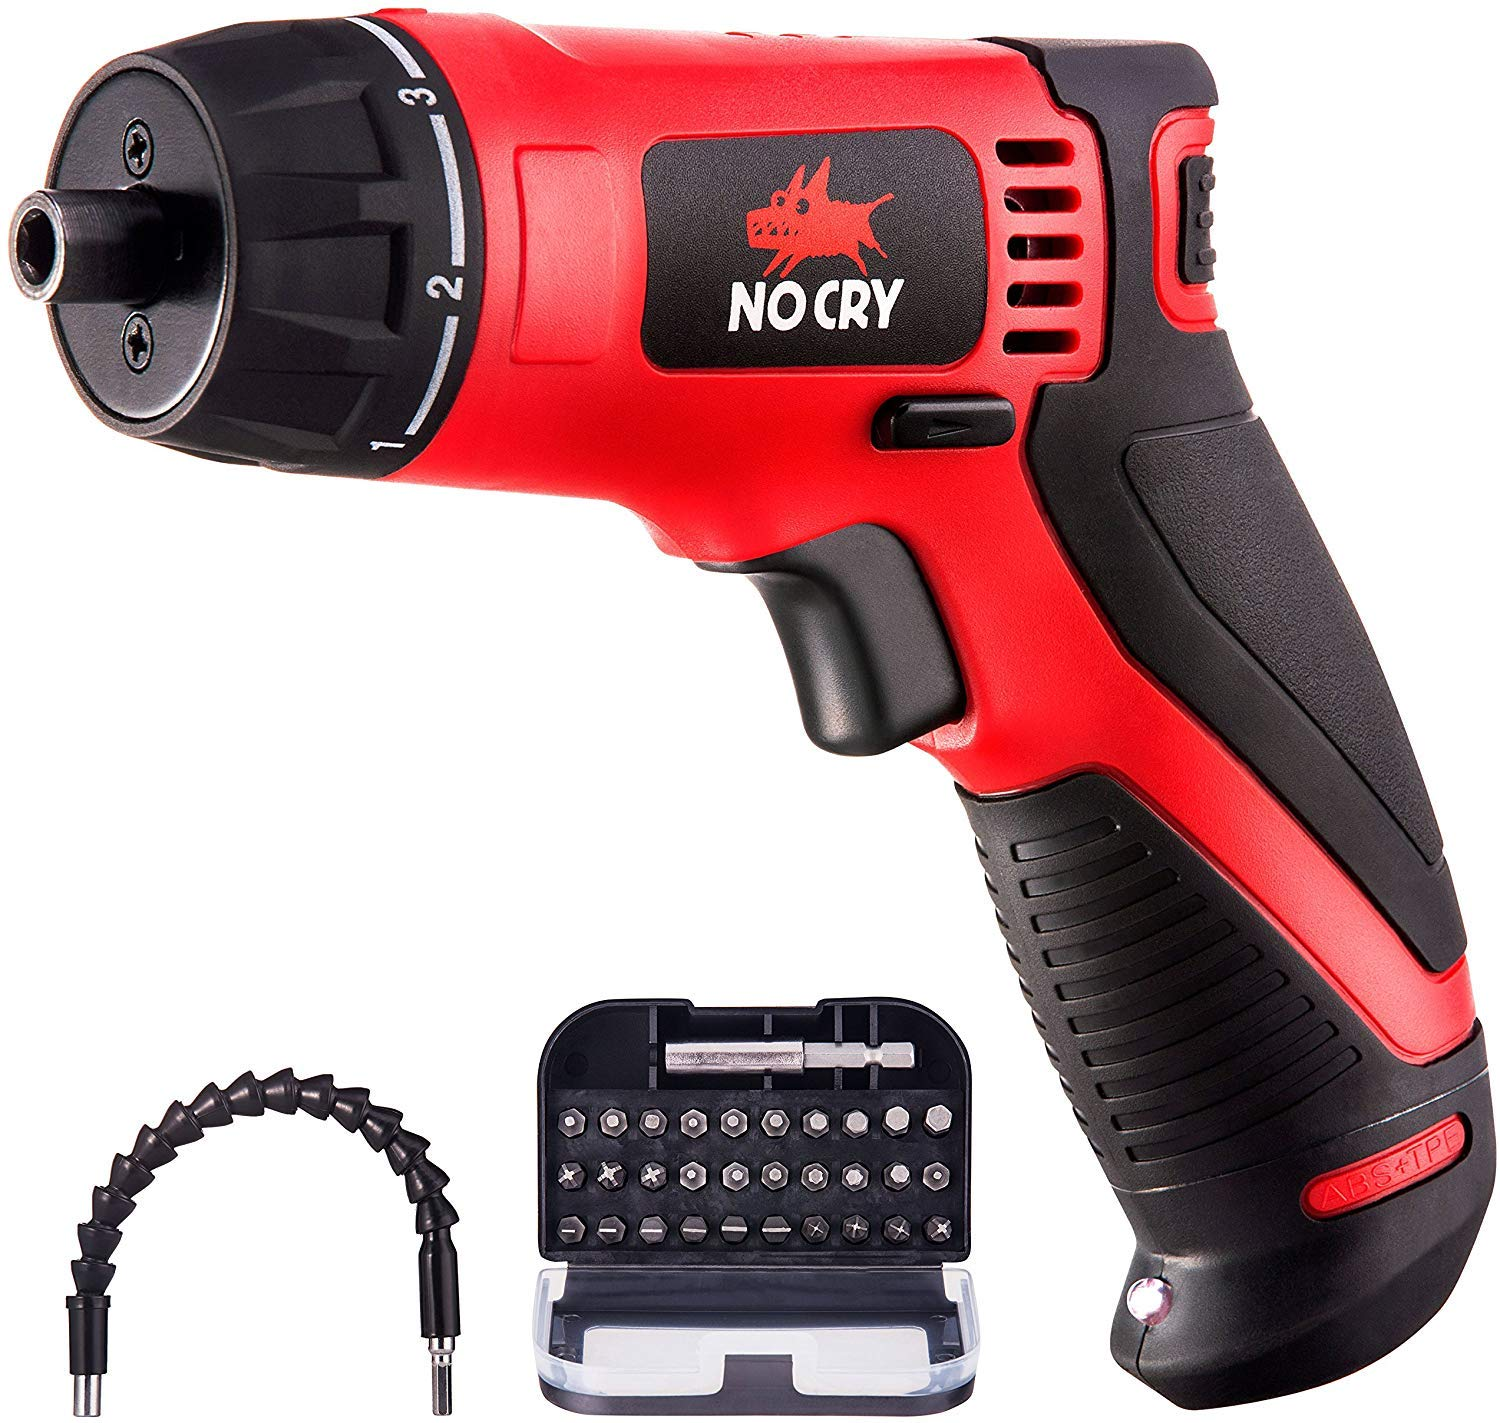 NoCry 10 Nm Cordless Electric Screwdriver - with 30 Screw Bits Set, Rechargeable 7.2 Volt Lithium Ion Battery and a Built-In LED Light